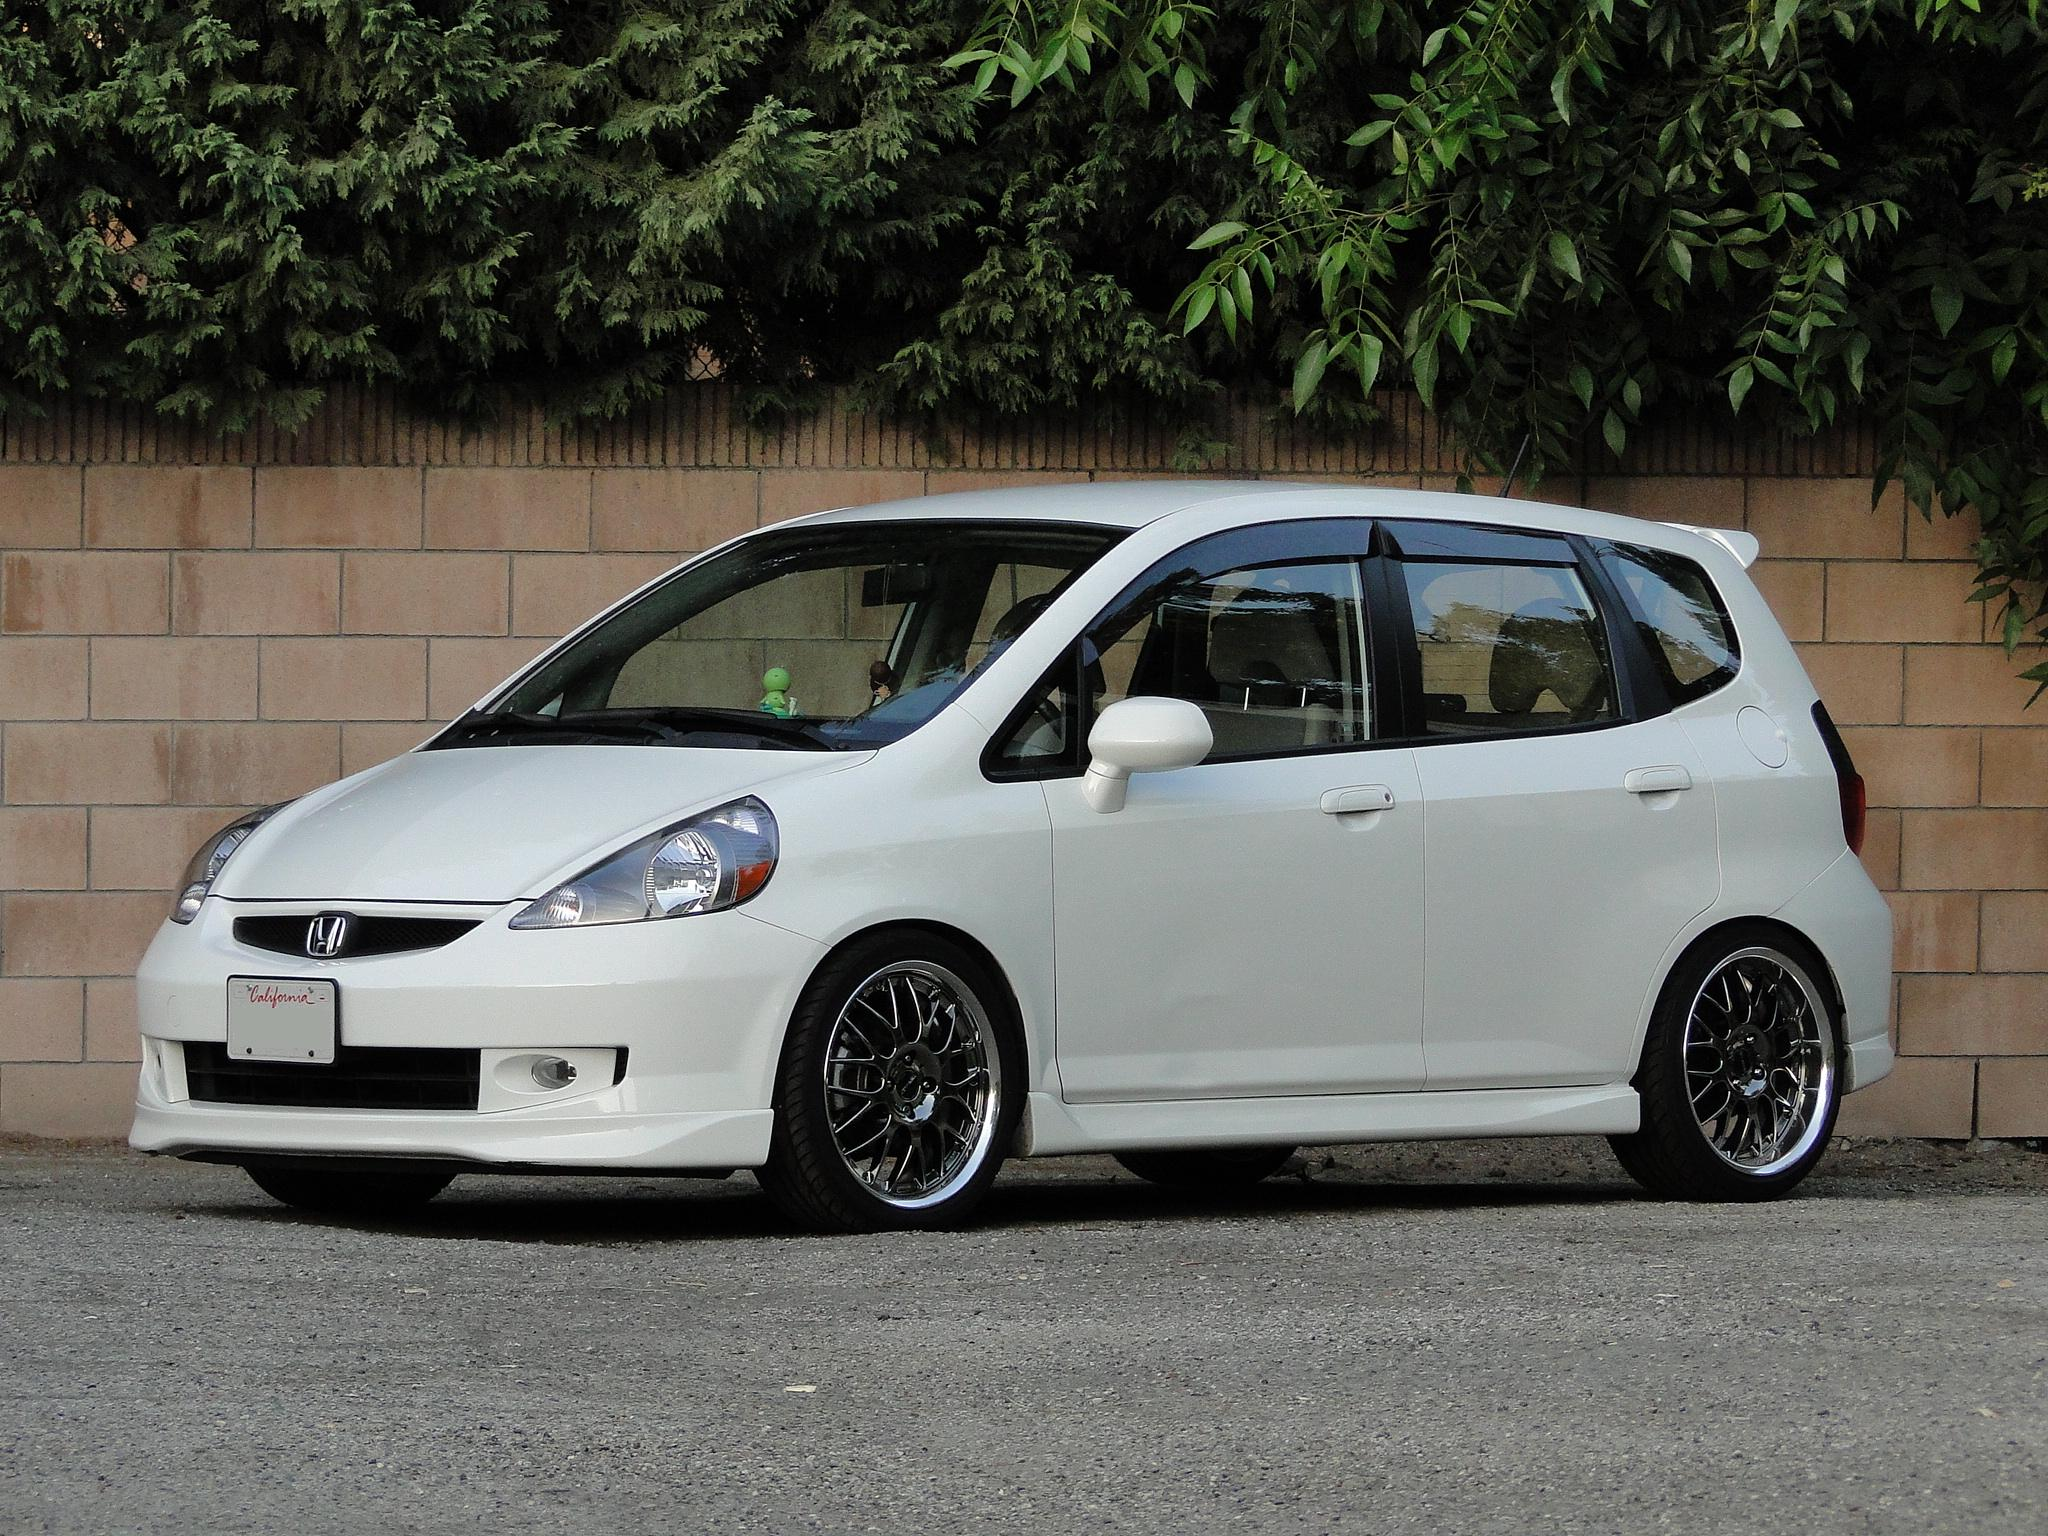 Marvelous 2007 Honda Fit Aftermarket Wheels